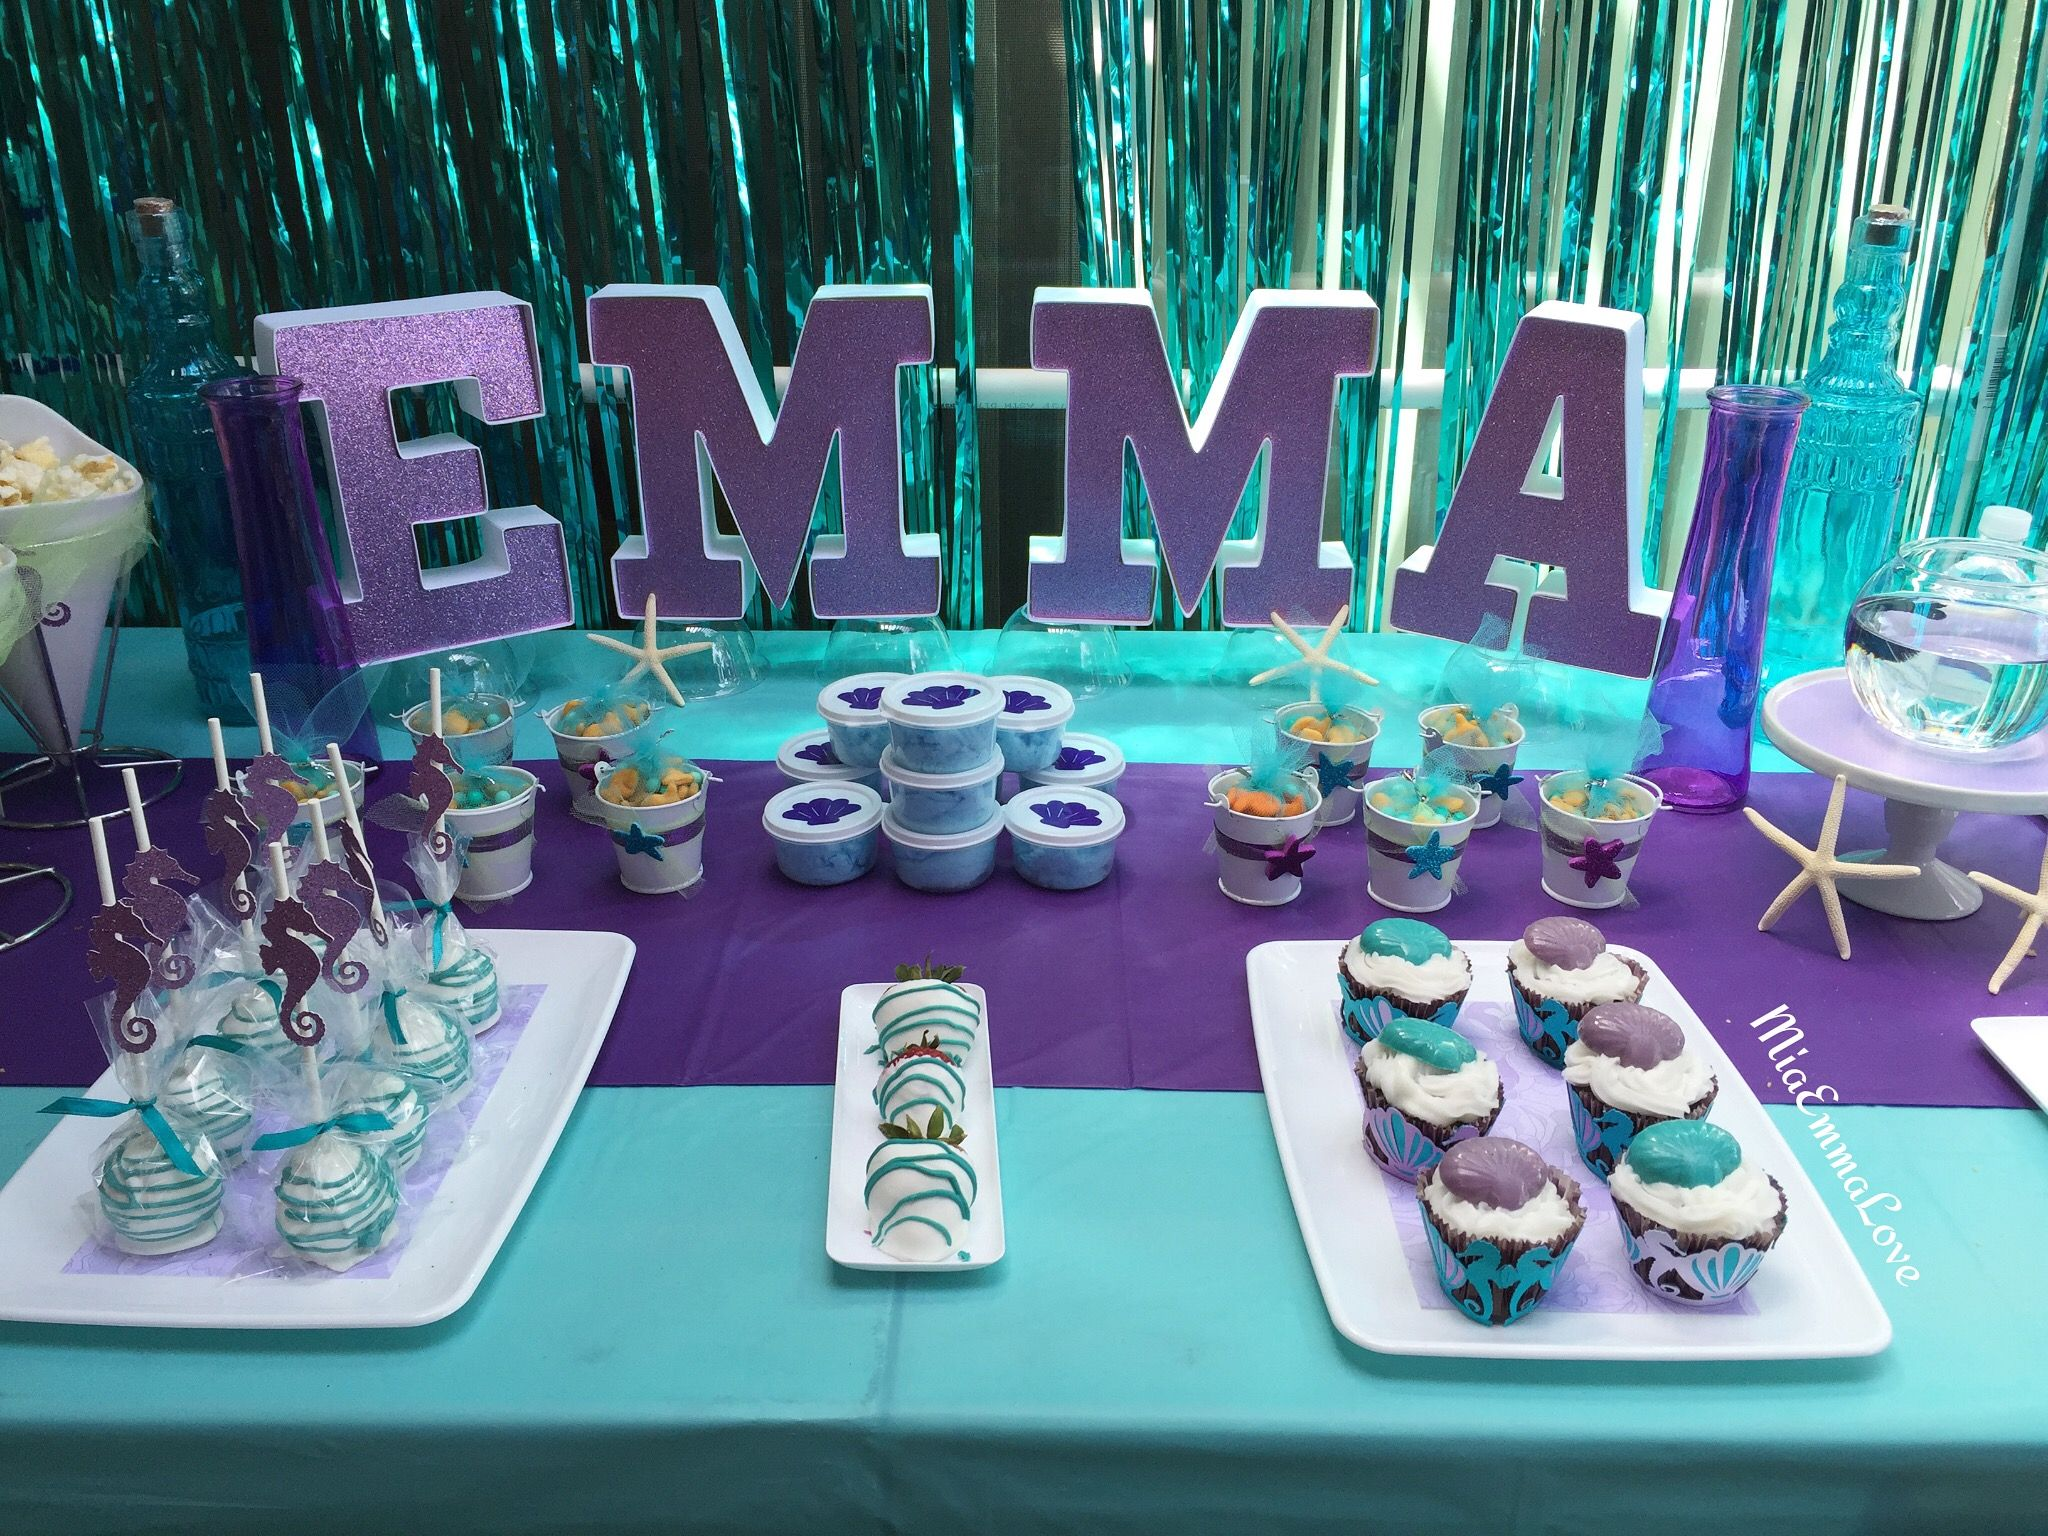 decorations theme parties purple color schemes purple colors teal sea